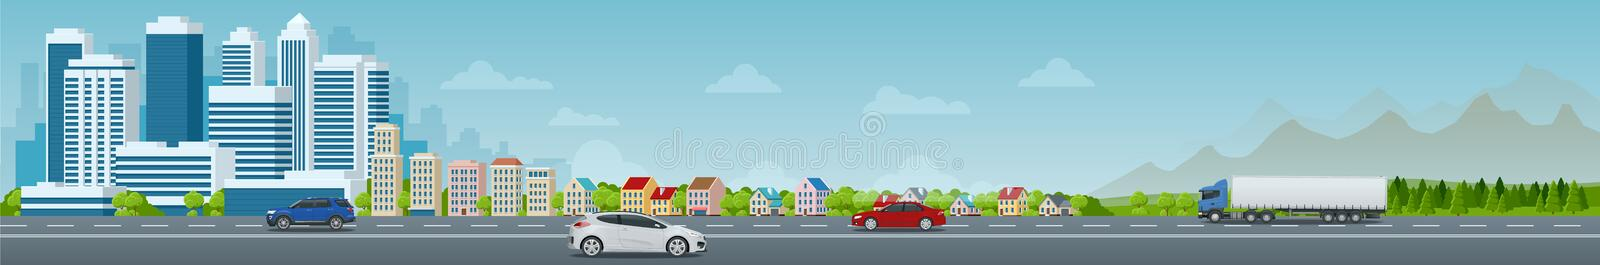 Vector concept city and suburban life. City street, large modern buildings, cityscape, cars. Urban landscape. royalty free illustration